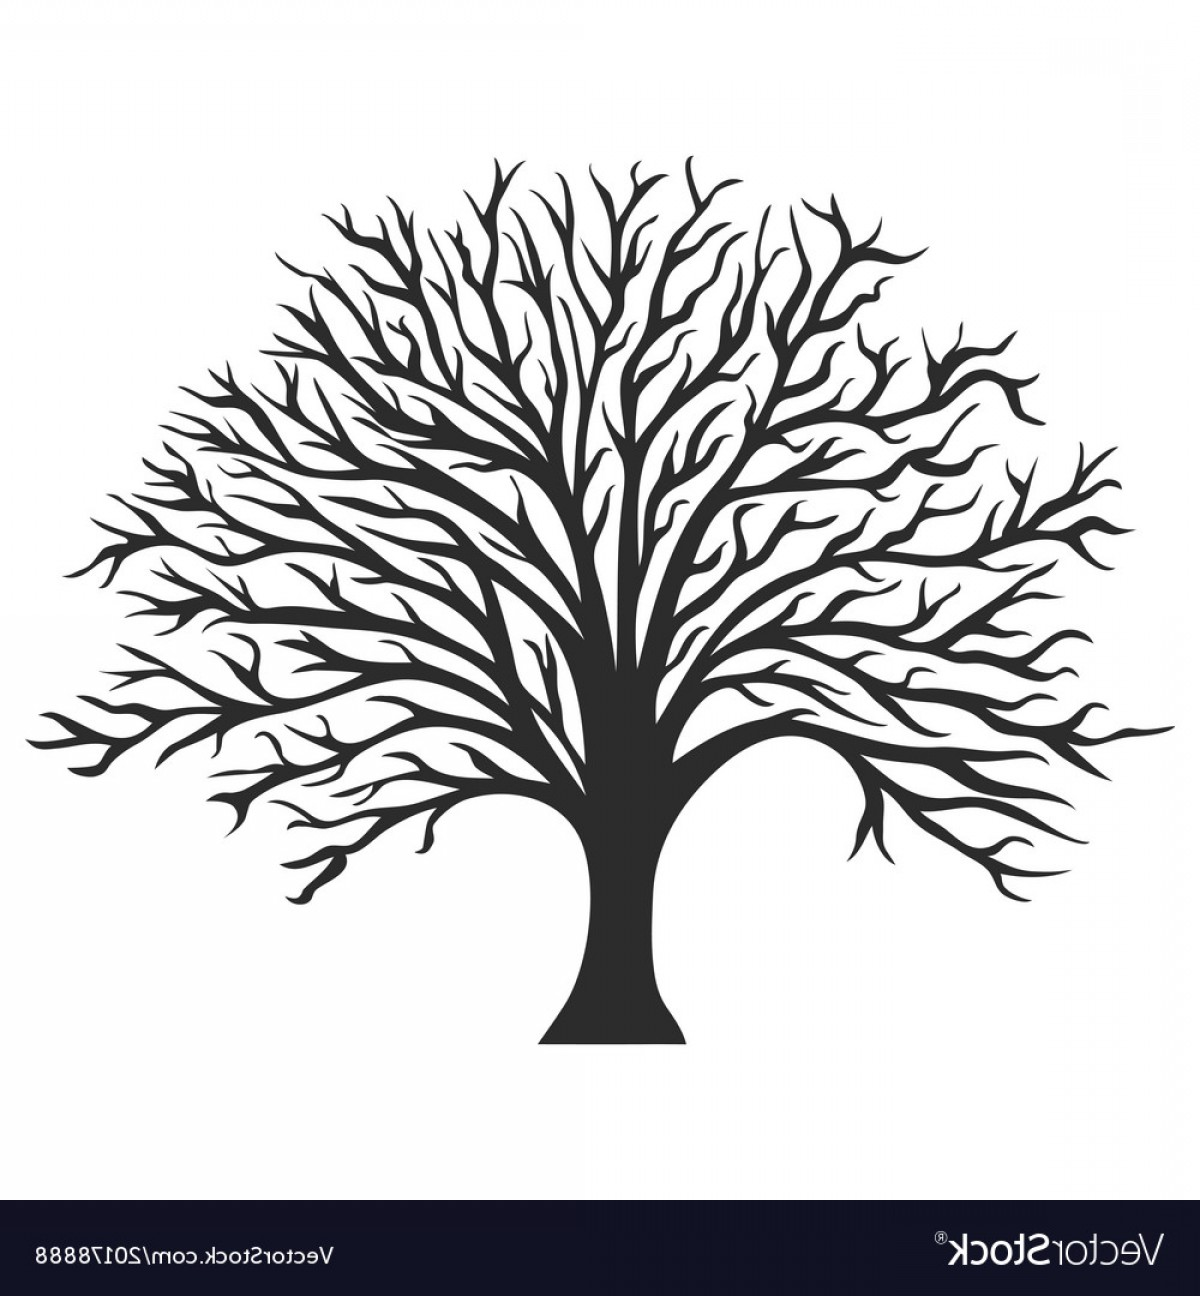 Oak Tree Silhouette Vector Graphics: Object Oak Tree Silhouette Vector